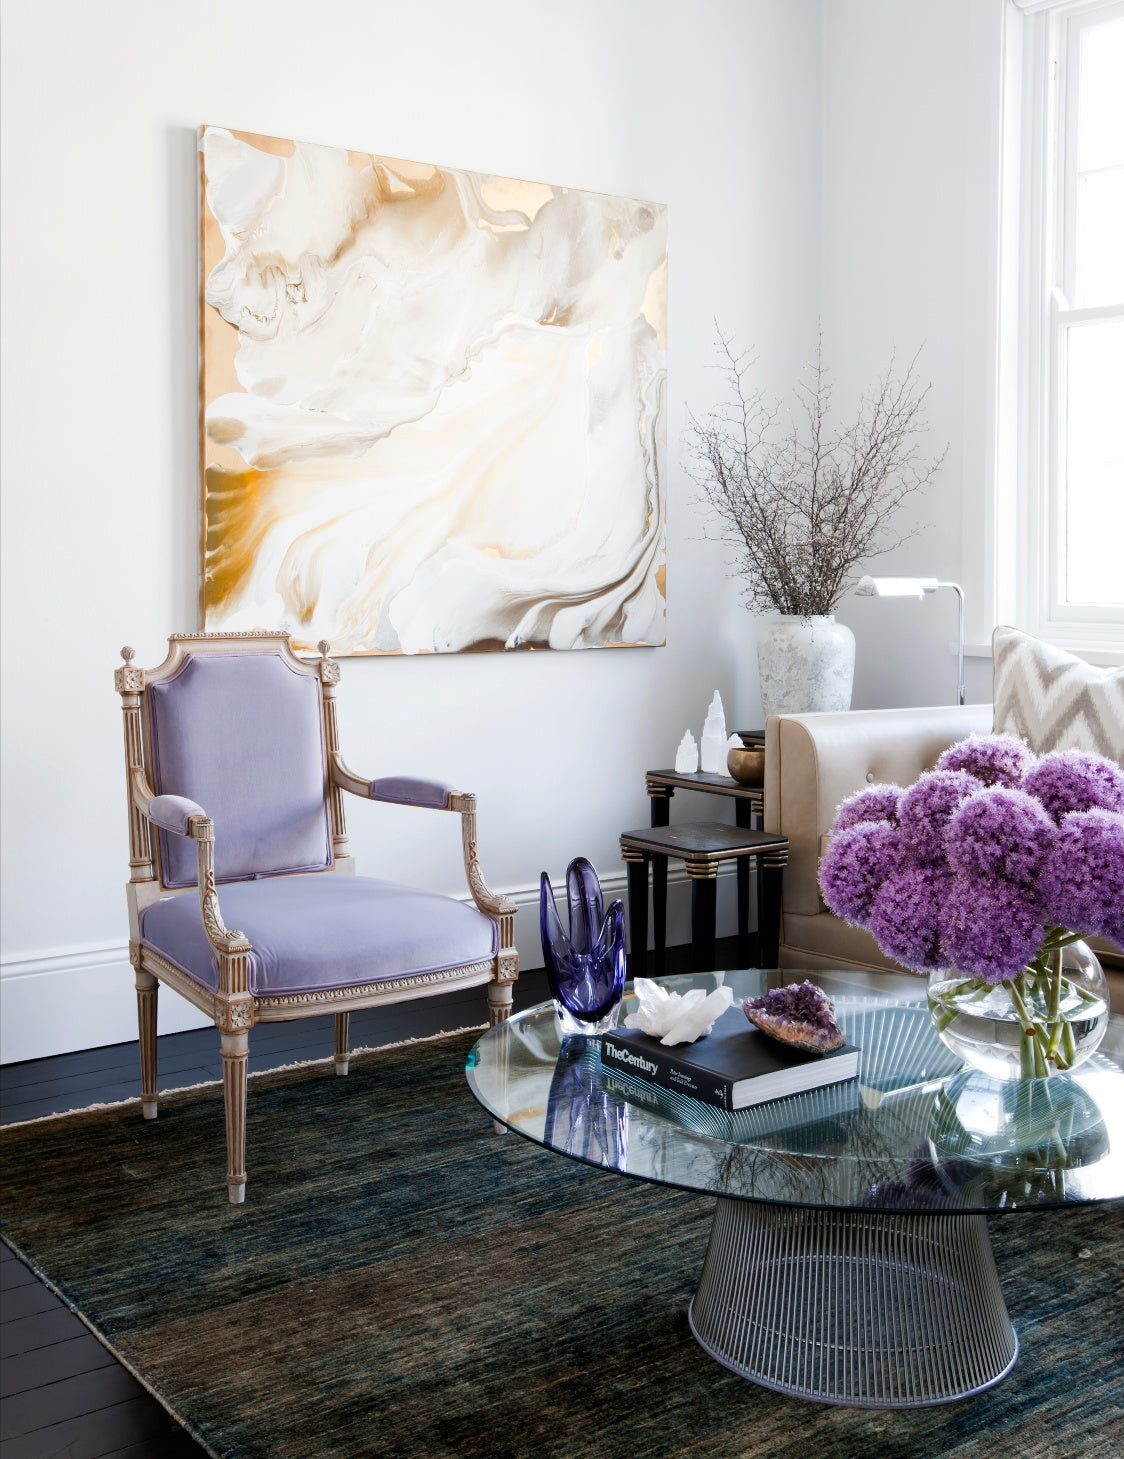 7 Ways To Decorate With Flowers In Your Home Interior - Brendan Wong Design - LuxDeco Style Guide